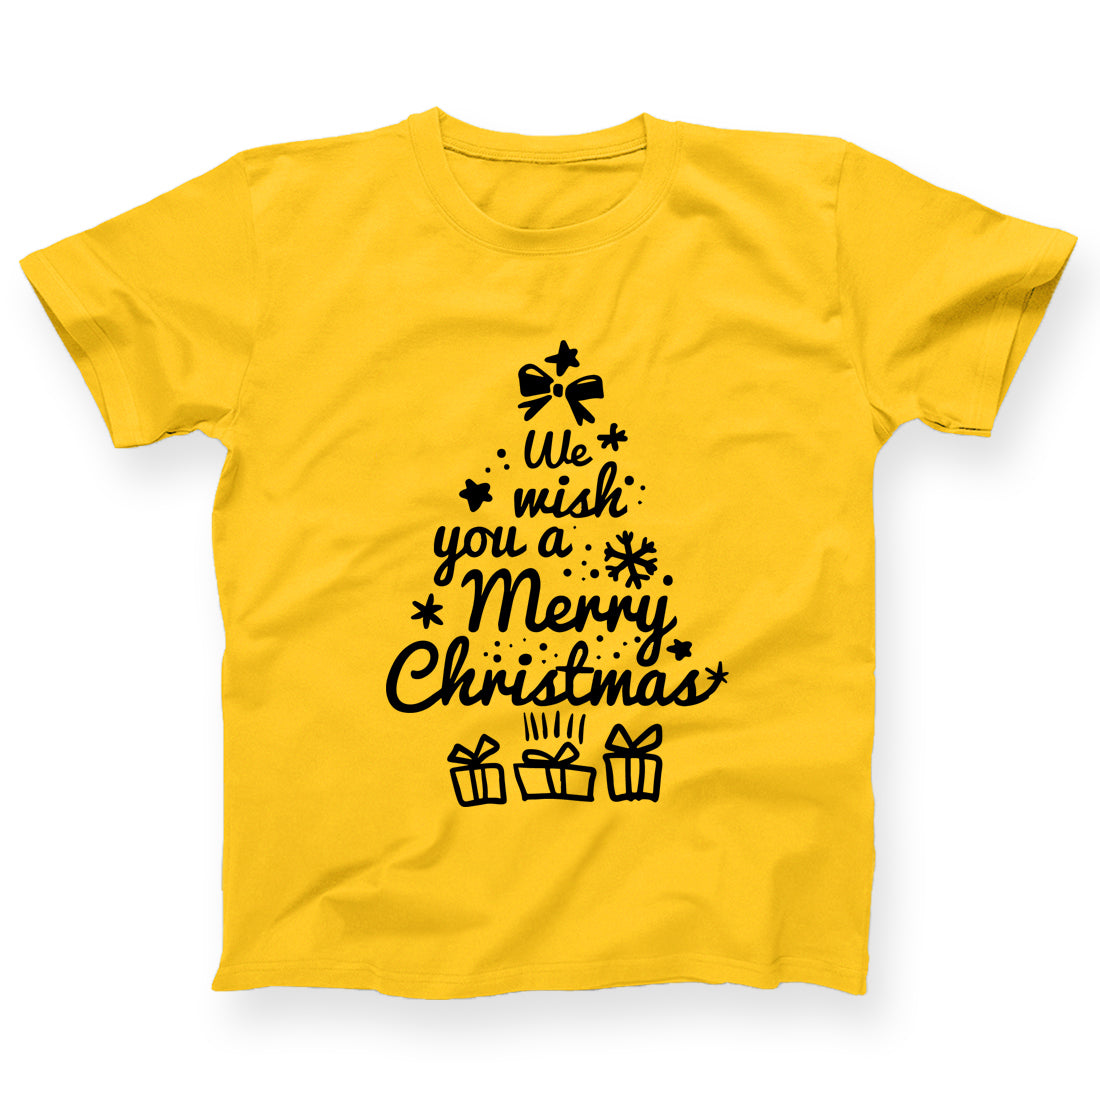 We Wish You A Merry Christmas TShirt